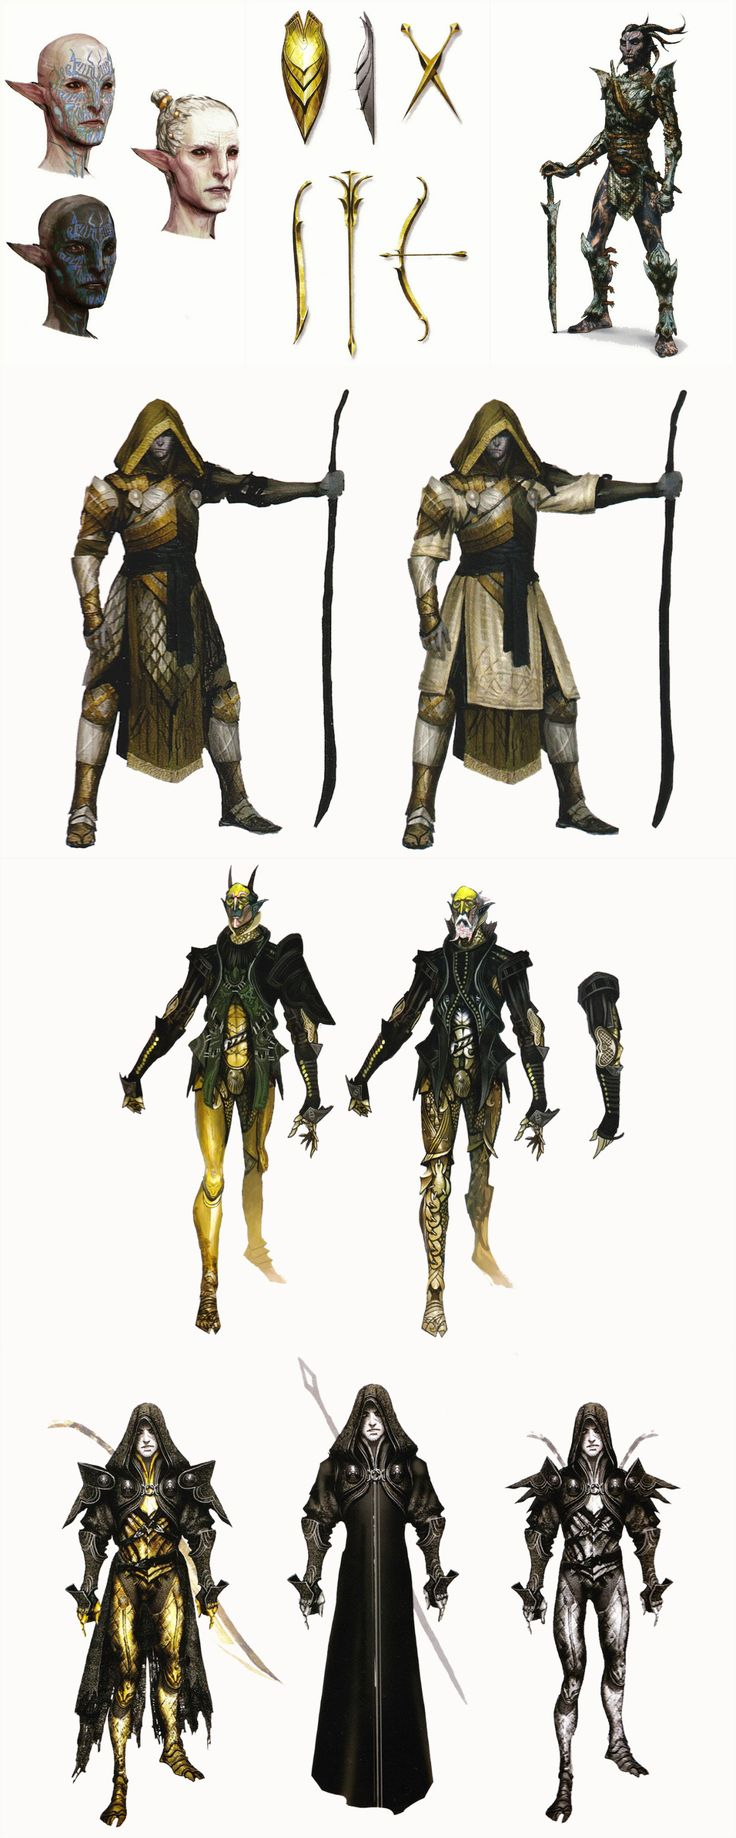 The Sentinels - The Temple of Mythal Keepers concept art in The Art of Dragon Age: Inquisition